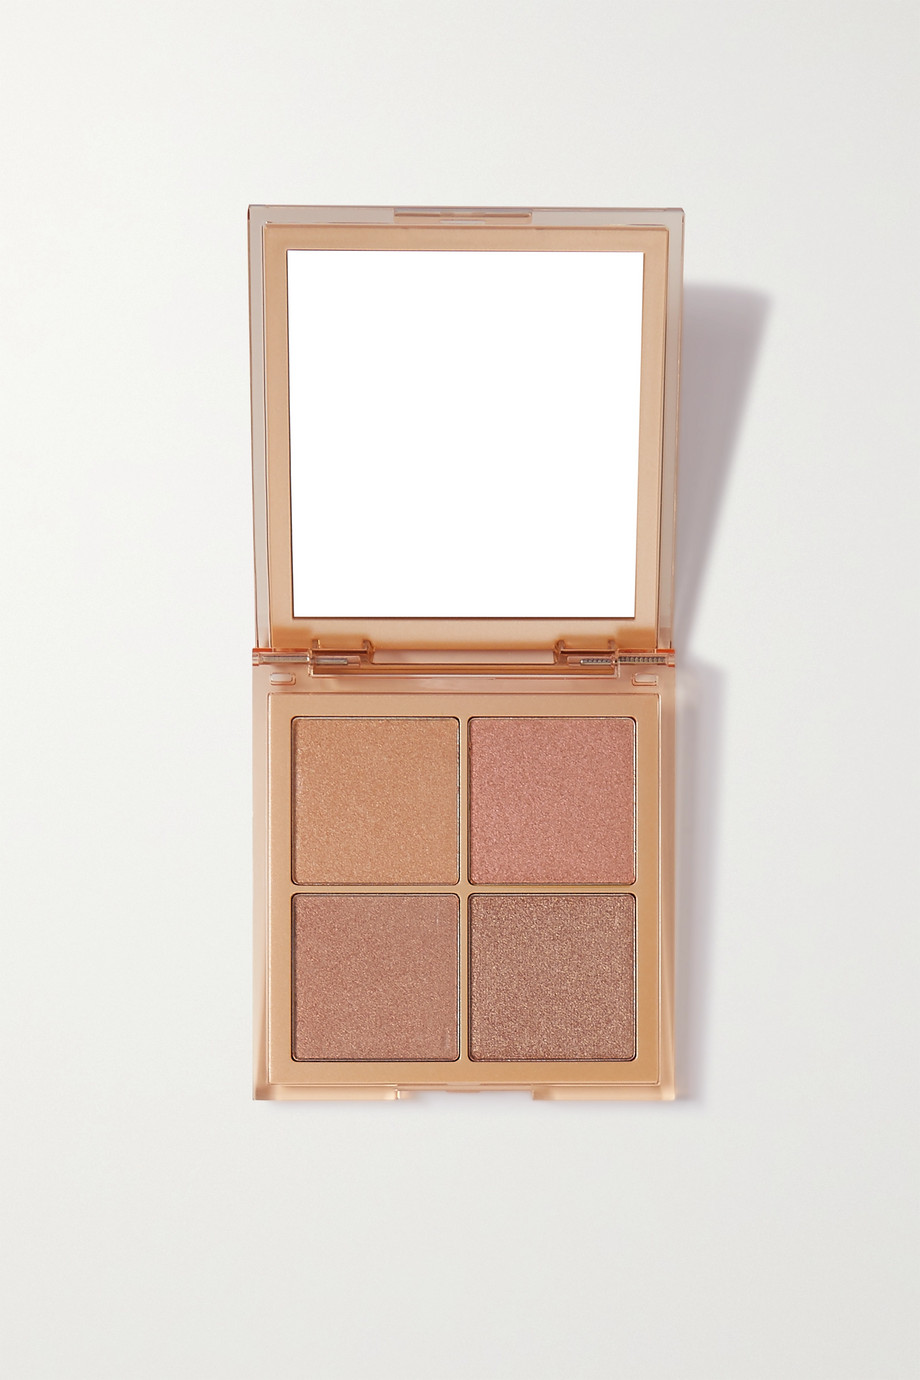 Huda Beauty Glow Obsessions Highlighter Palette - Rich